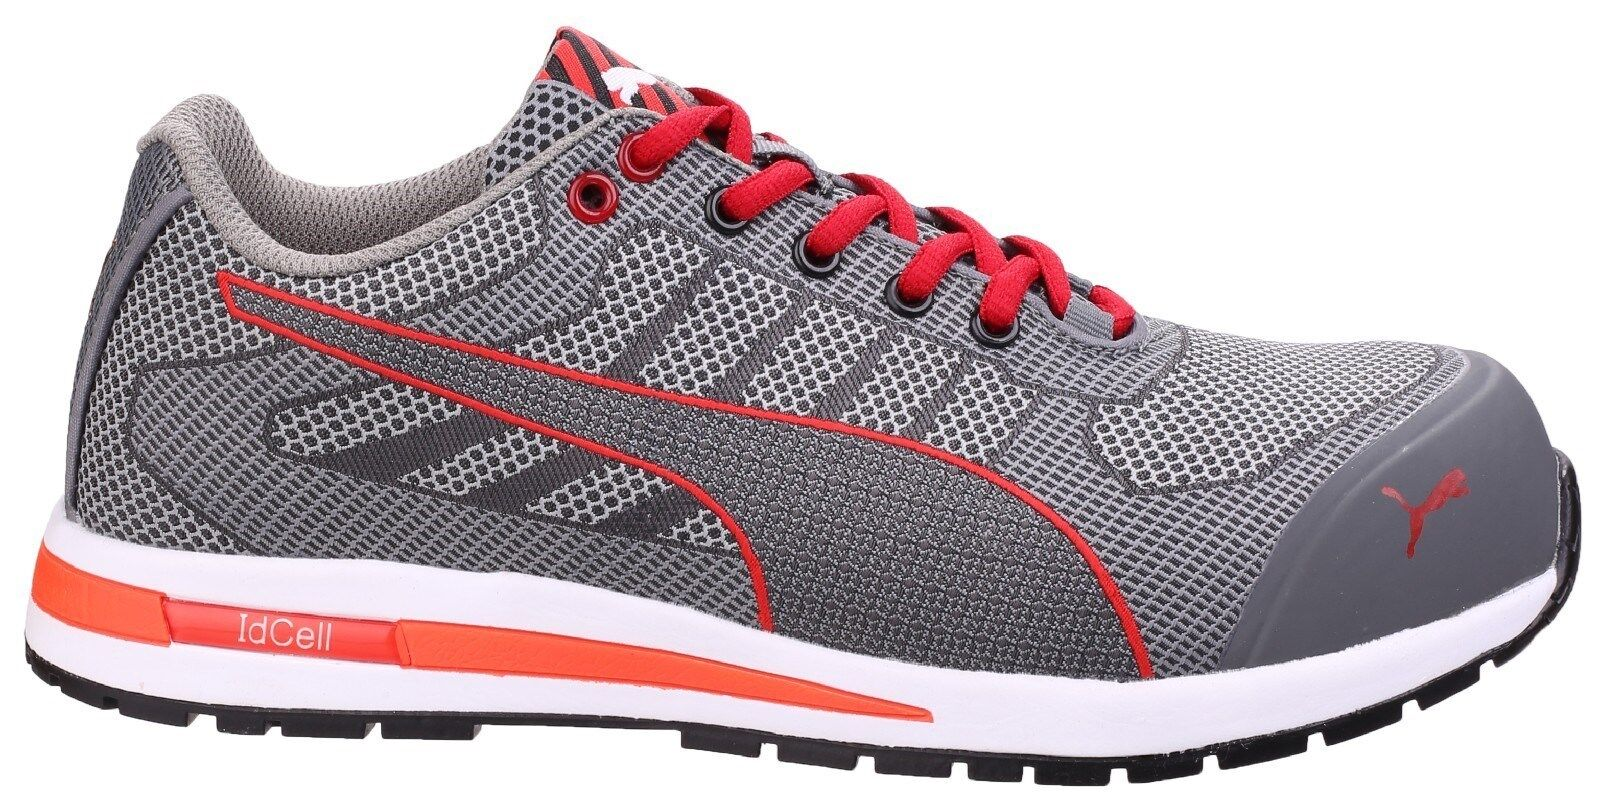 24e4e403f85501 Puma Xelerate Knit Low Safety Trainers Mens Industrial Composite Toe Work  Shoes